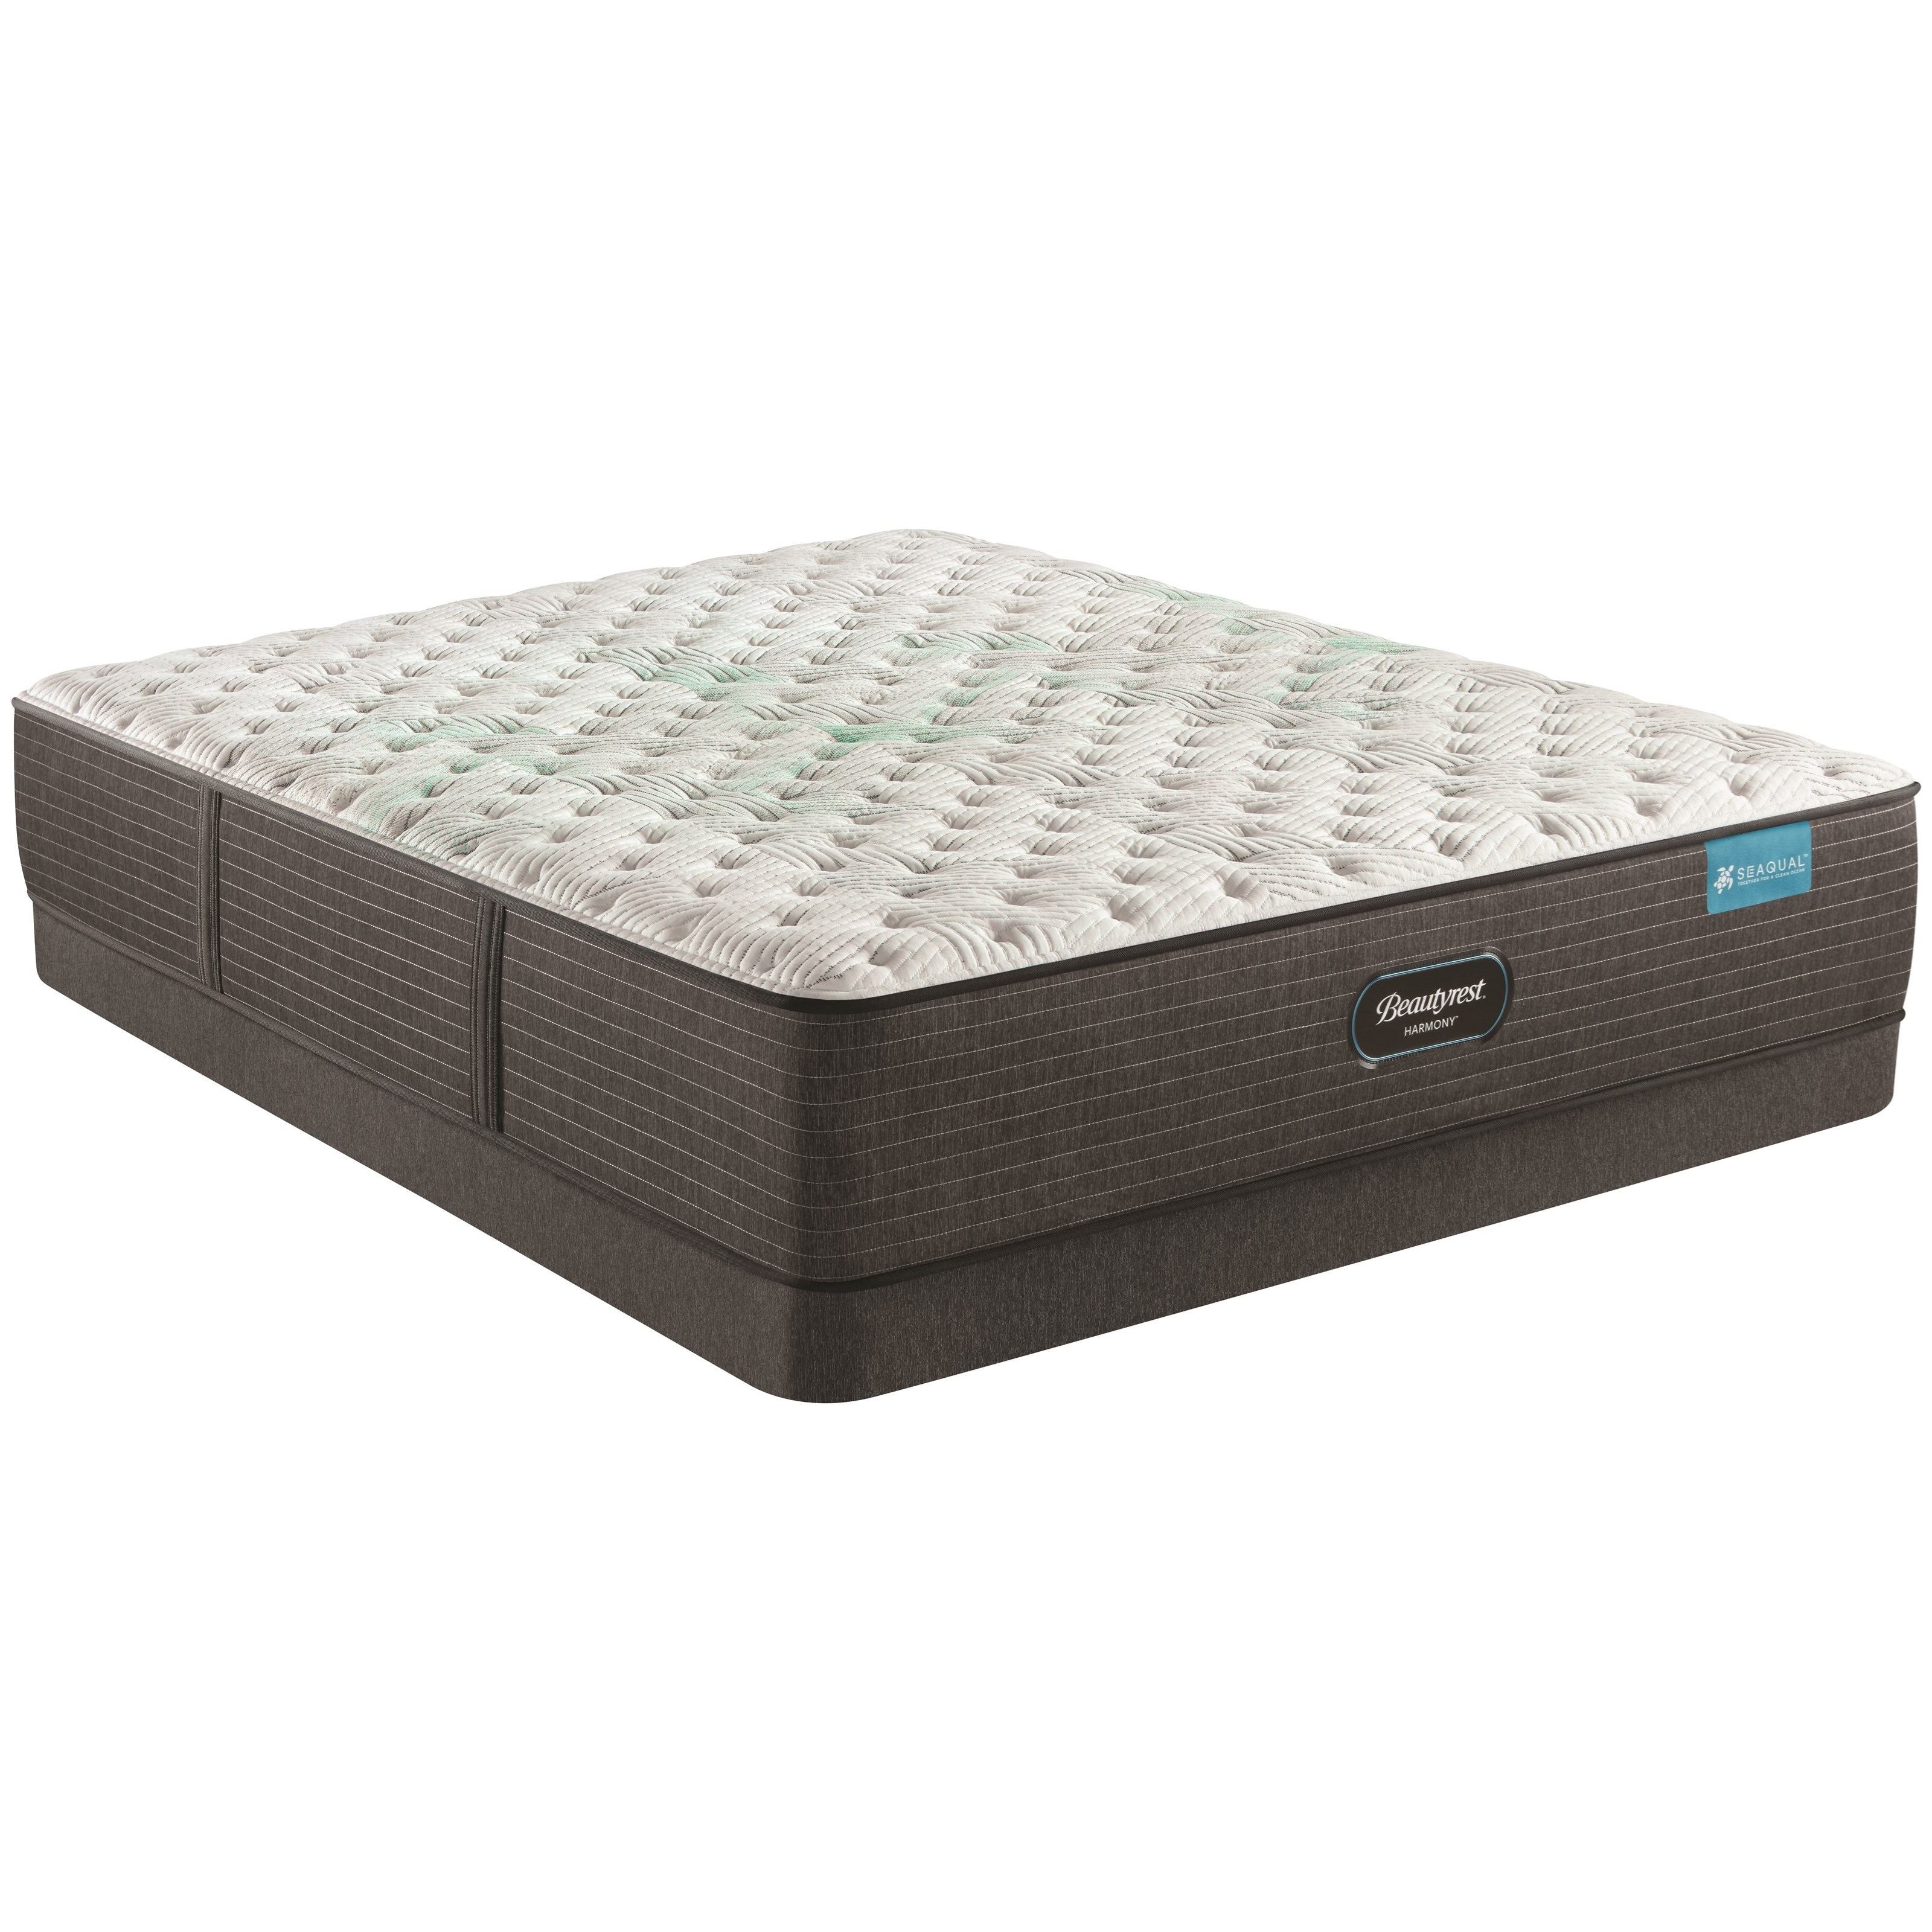 "Seaton Extra Firm TT Full 13"" Extra Firm LP Set by Beautyrest at Morris Home"